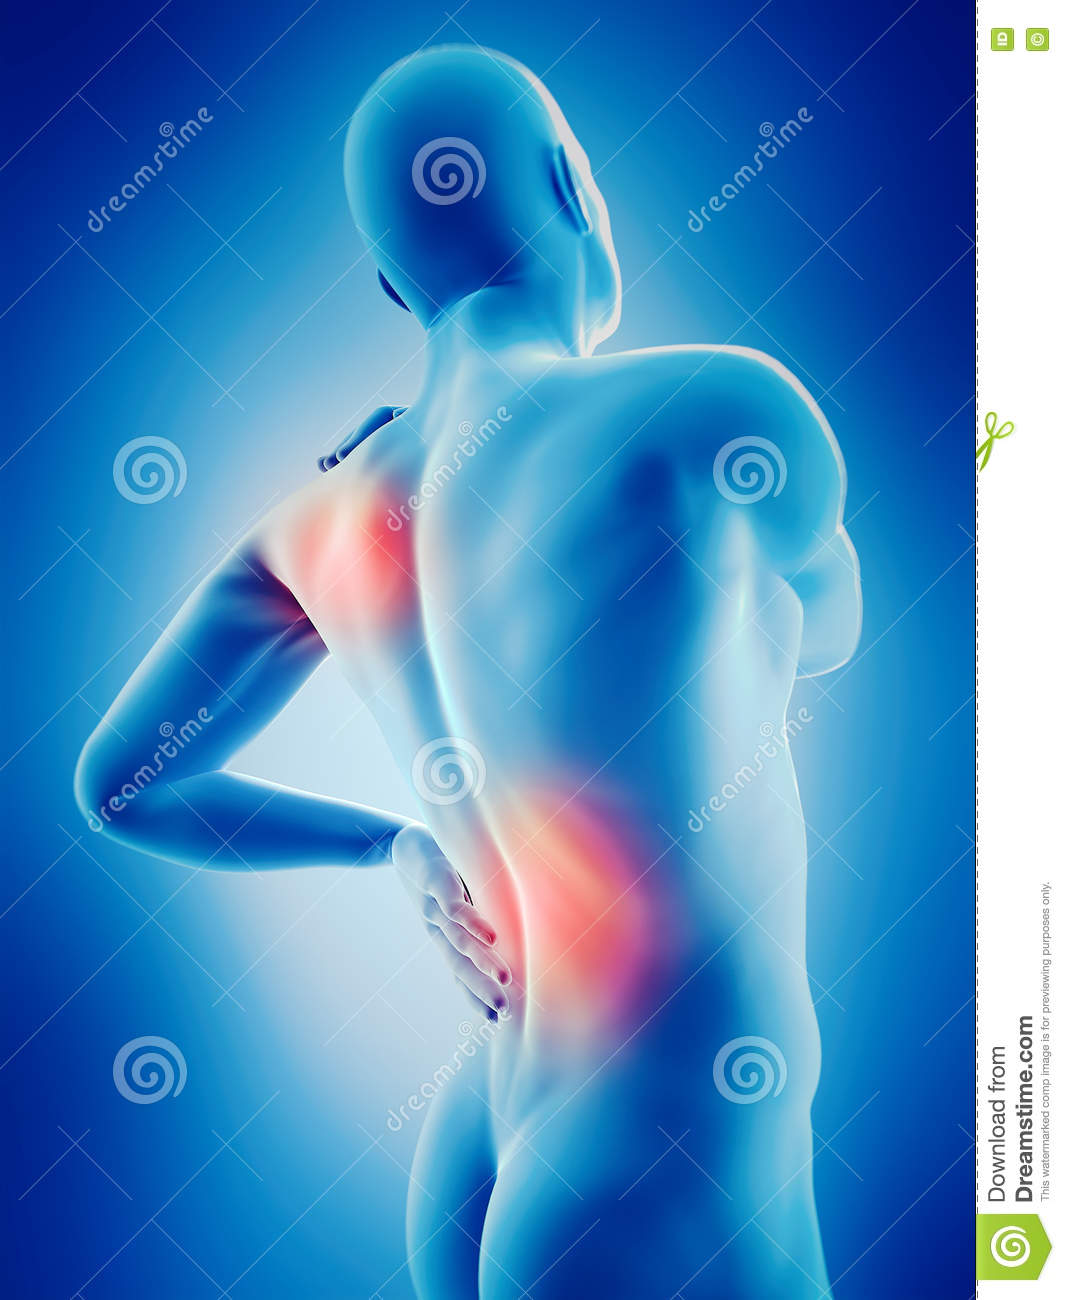 Highlighted Parts Of The Human Body Stock Illustration